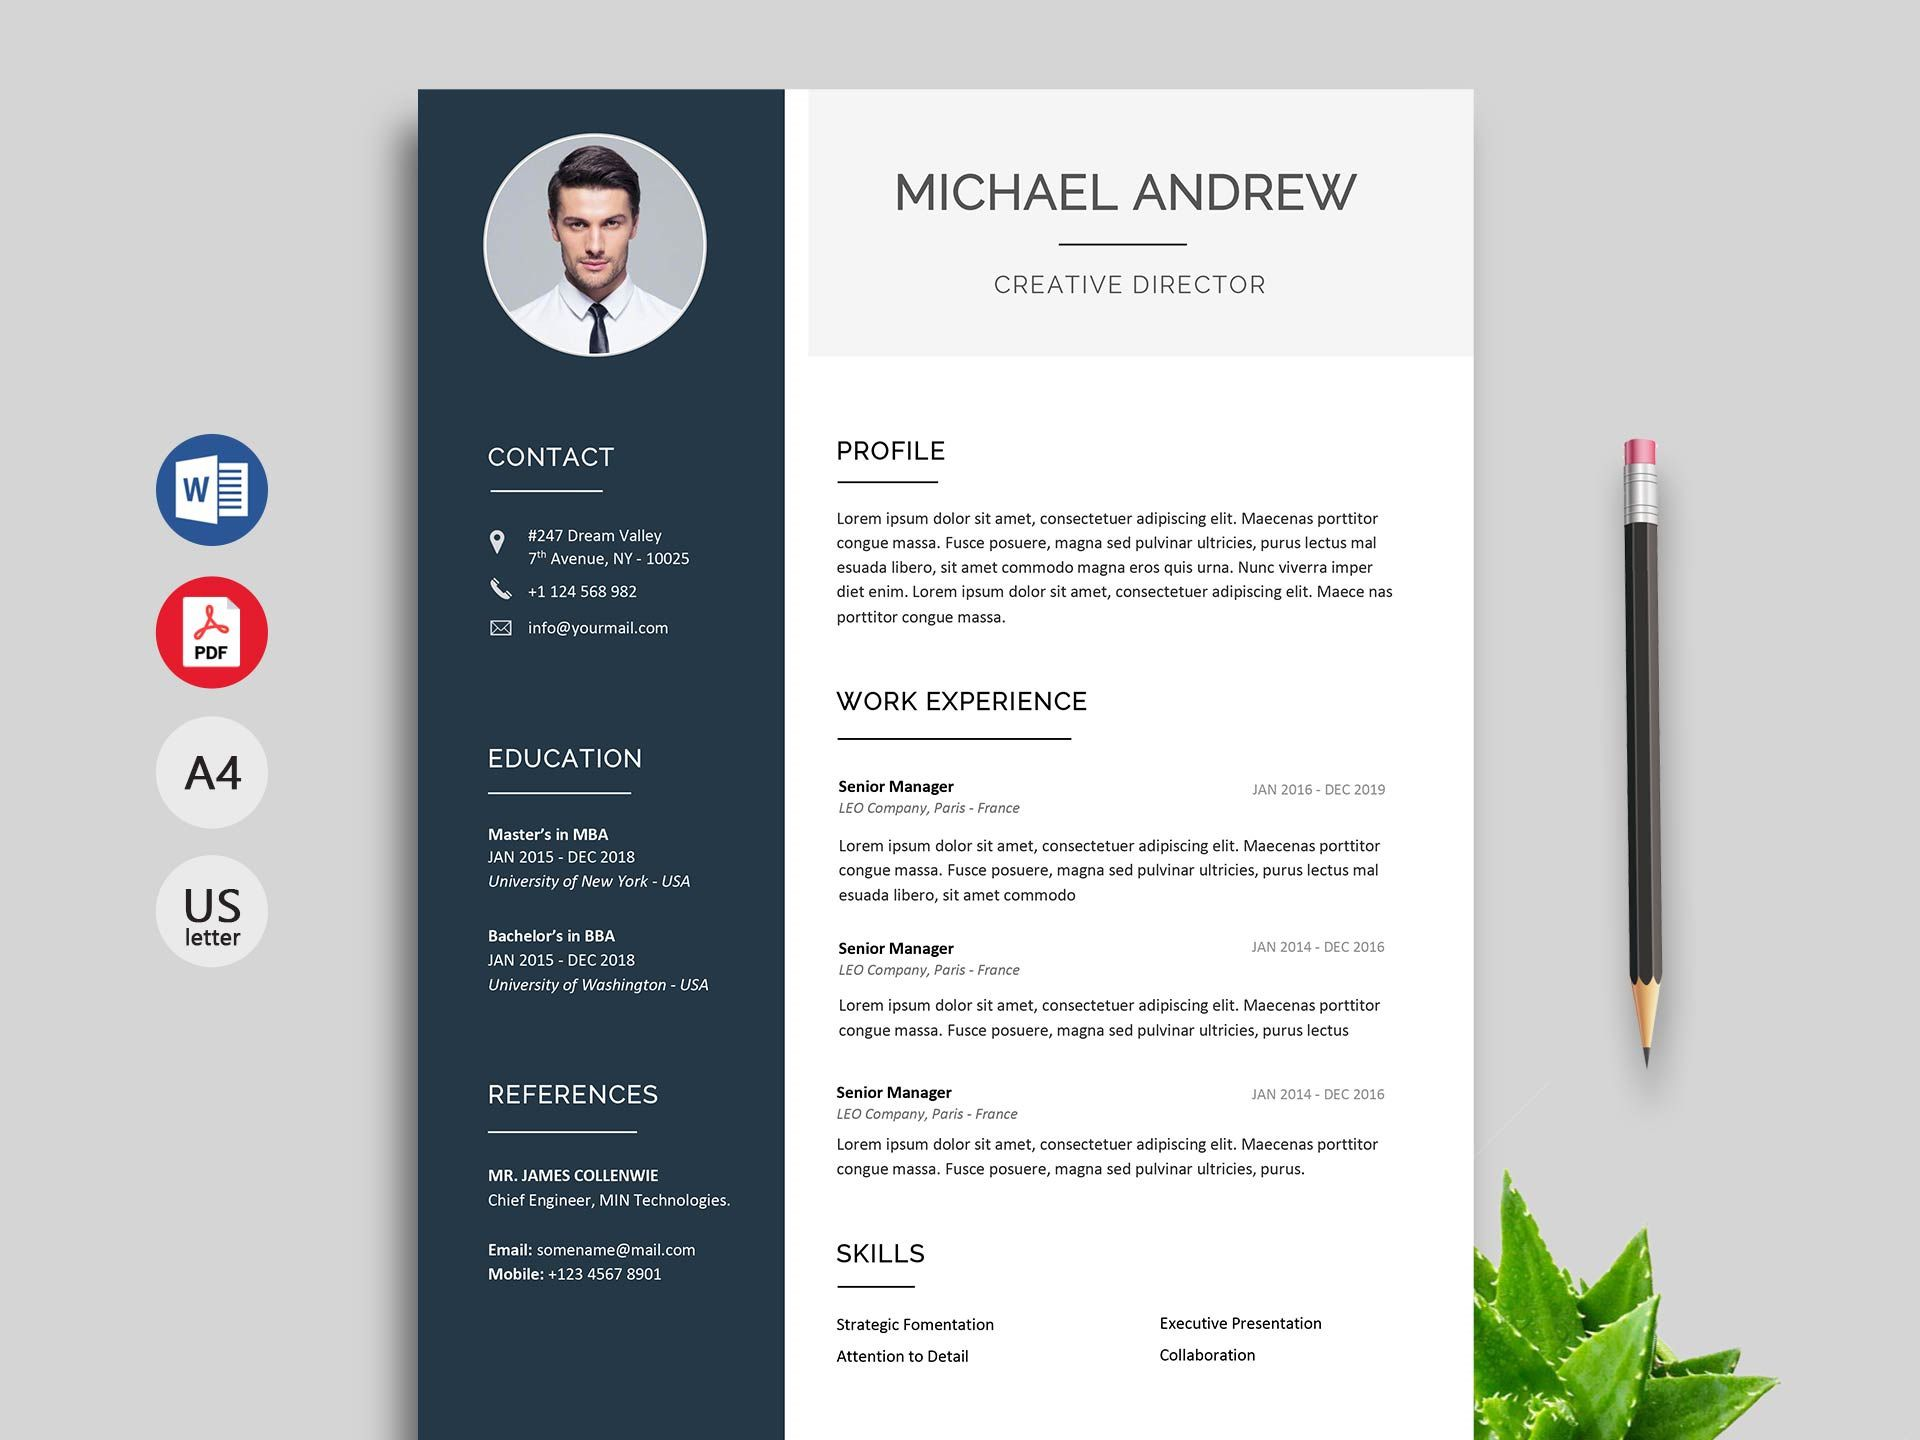 007 Awful Professional Resume Template Free Download Word High Resolution  Cv 2020 Format With PhotoFull